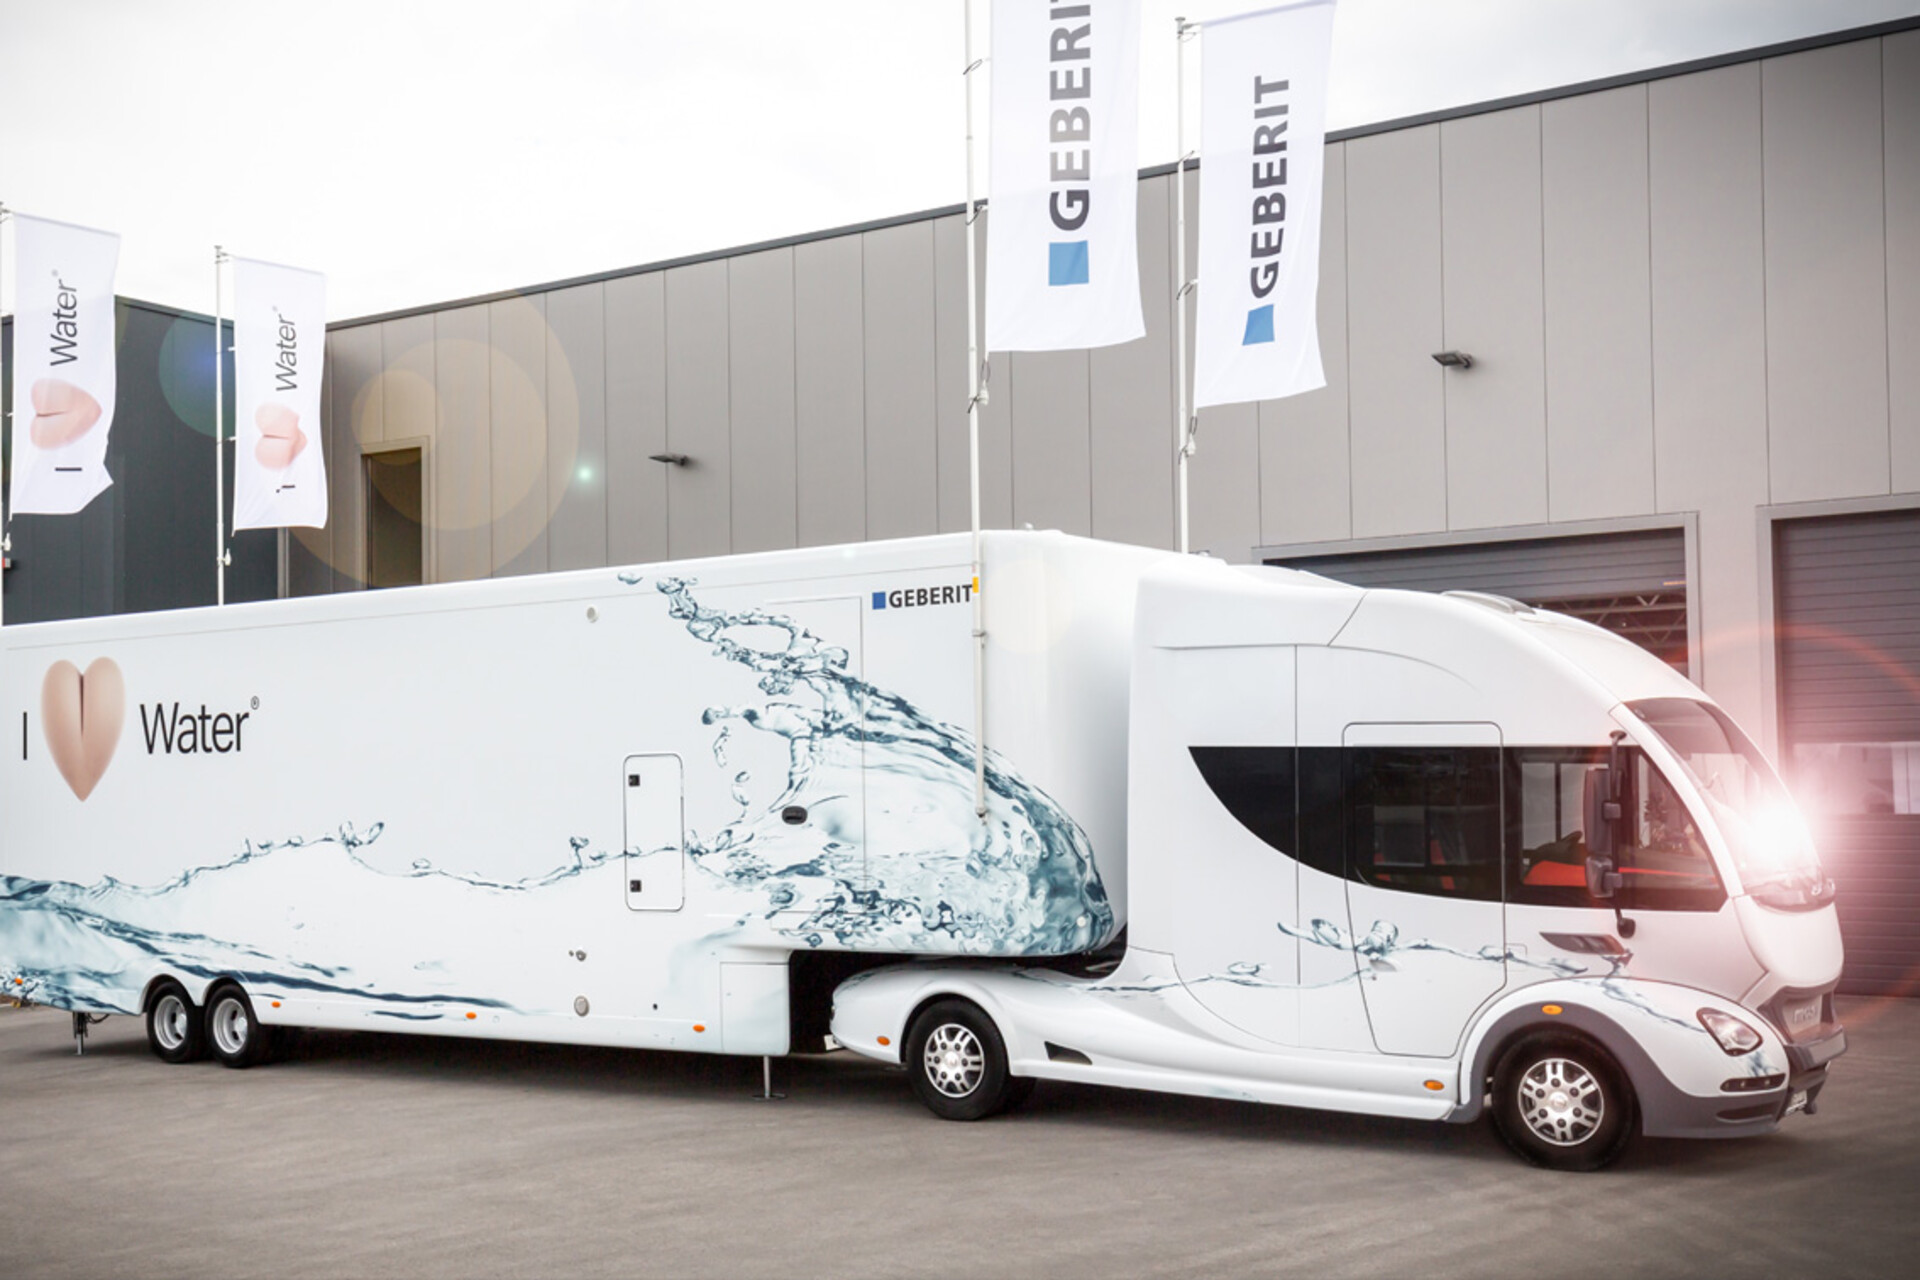 geberit-aquaclean-infomobil-showtruck-7.jpg